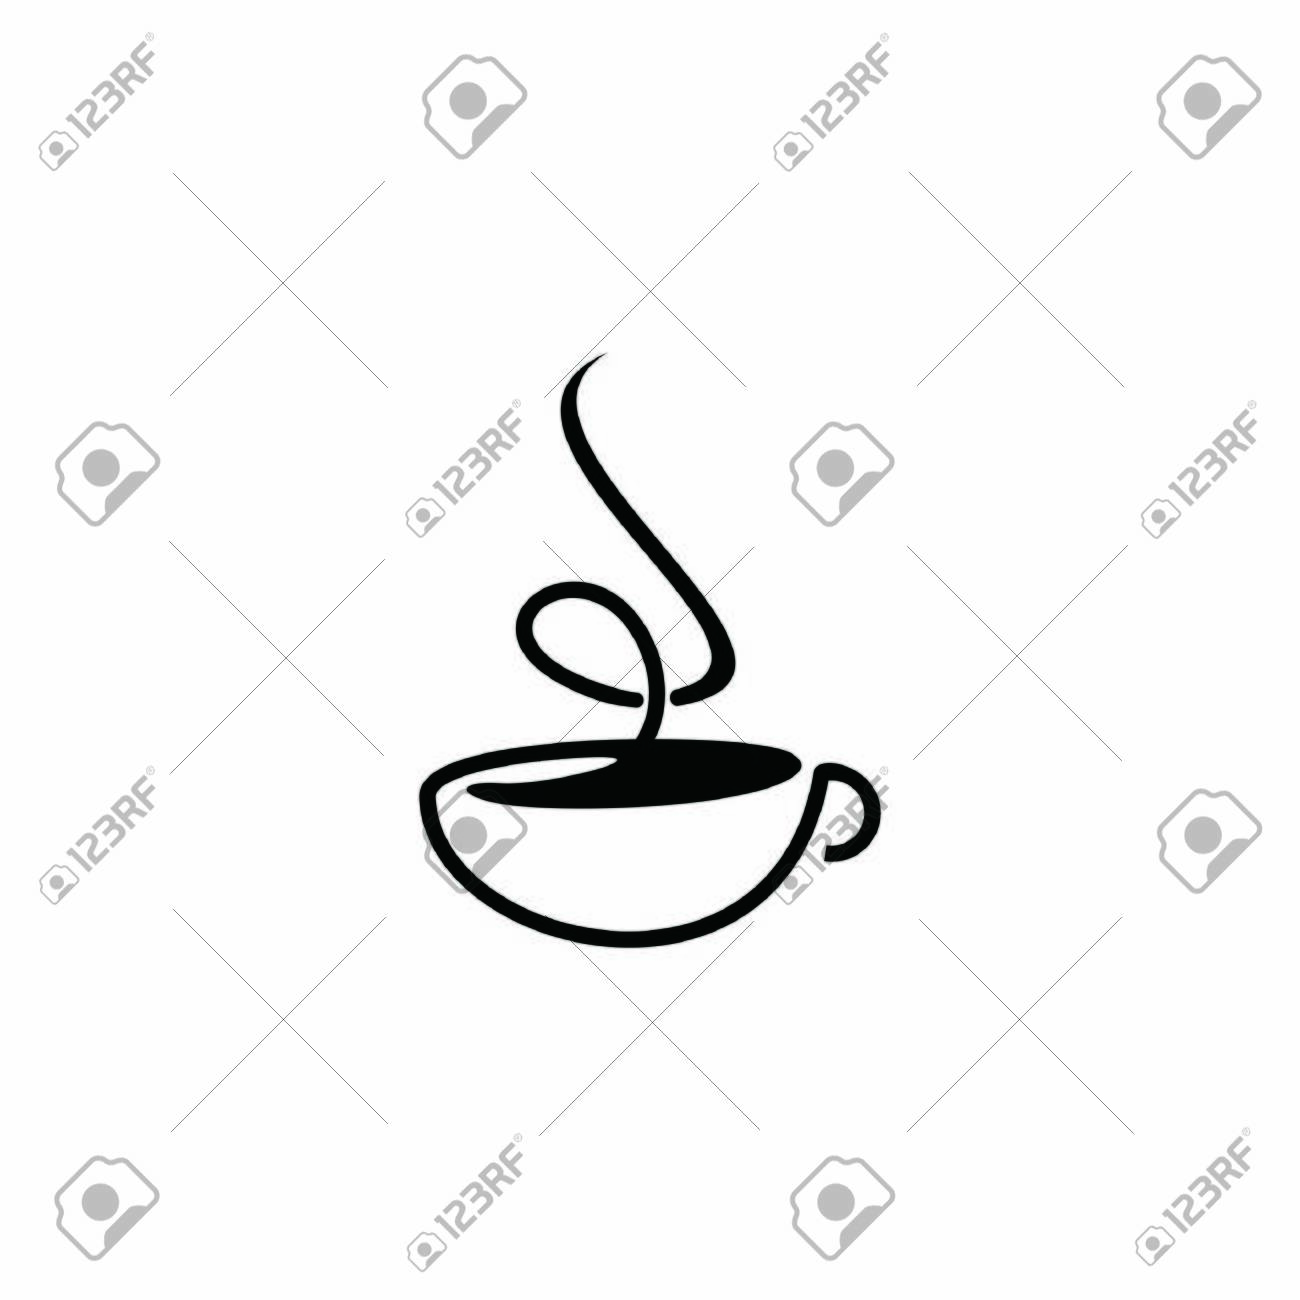 simple coffee cup logo flat black color illustration, icon and design template - 147560280